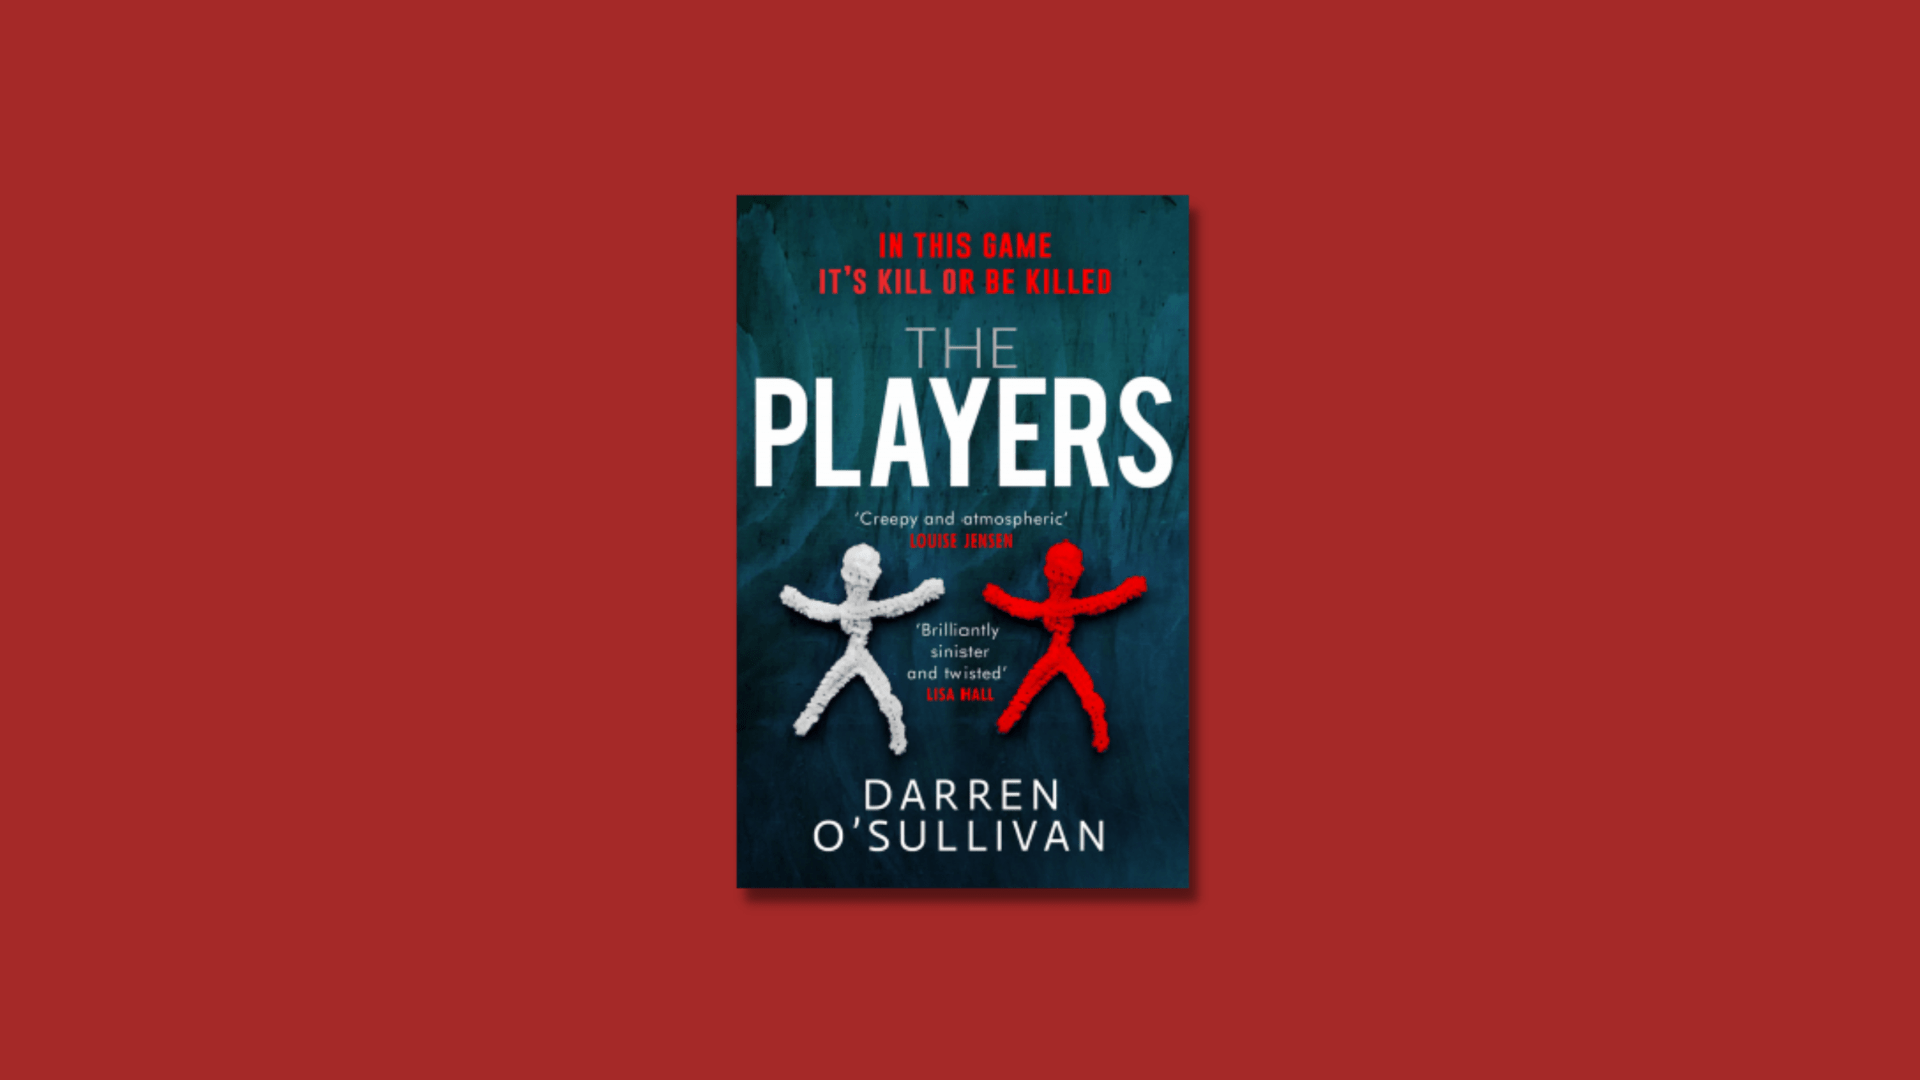 The cover of The Players by Darren O'Sullivan against a blood read background